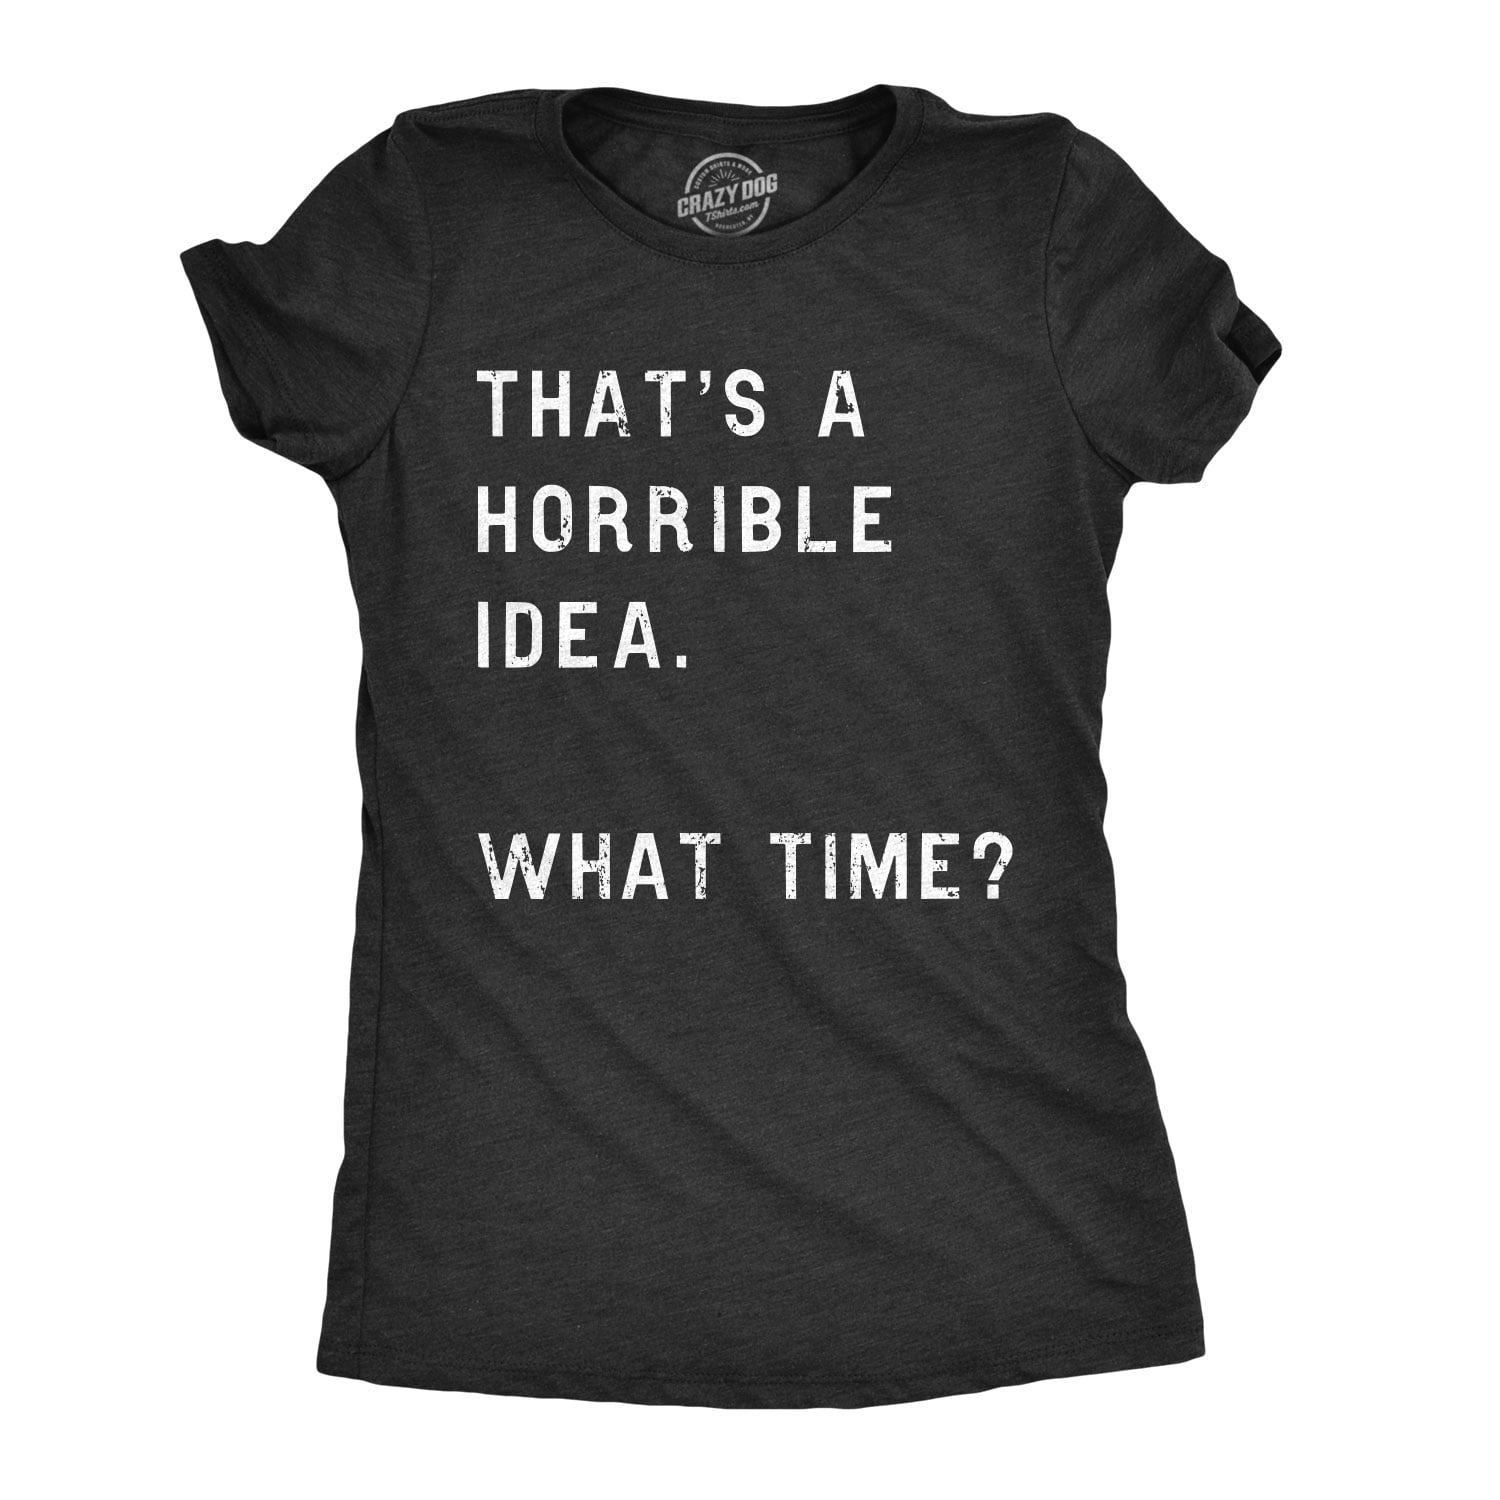 What Time Mens That's A Horrible Idea Tshirt Funny Drinking Party Hijinx Tee